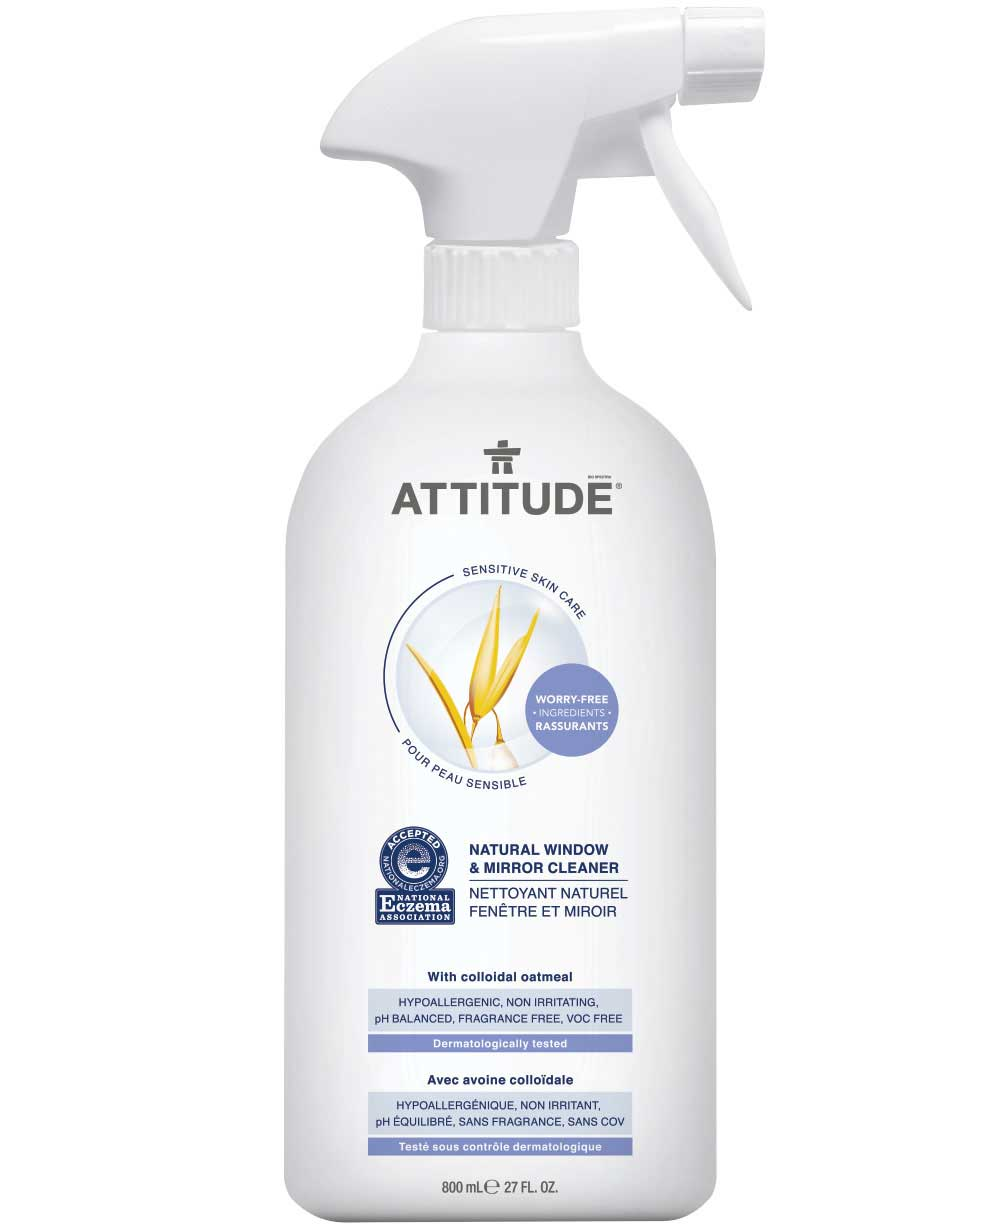 HOUSEHOLD CLEANING PRODUCTS, GOOD FOR KIDS AND SENSITIVE IMMUNE SYSTEMS